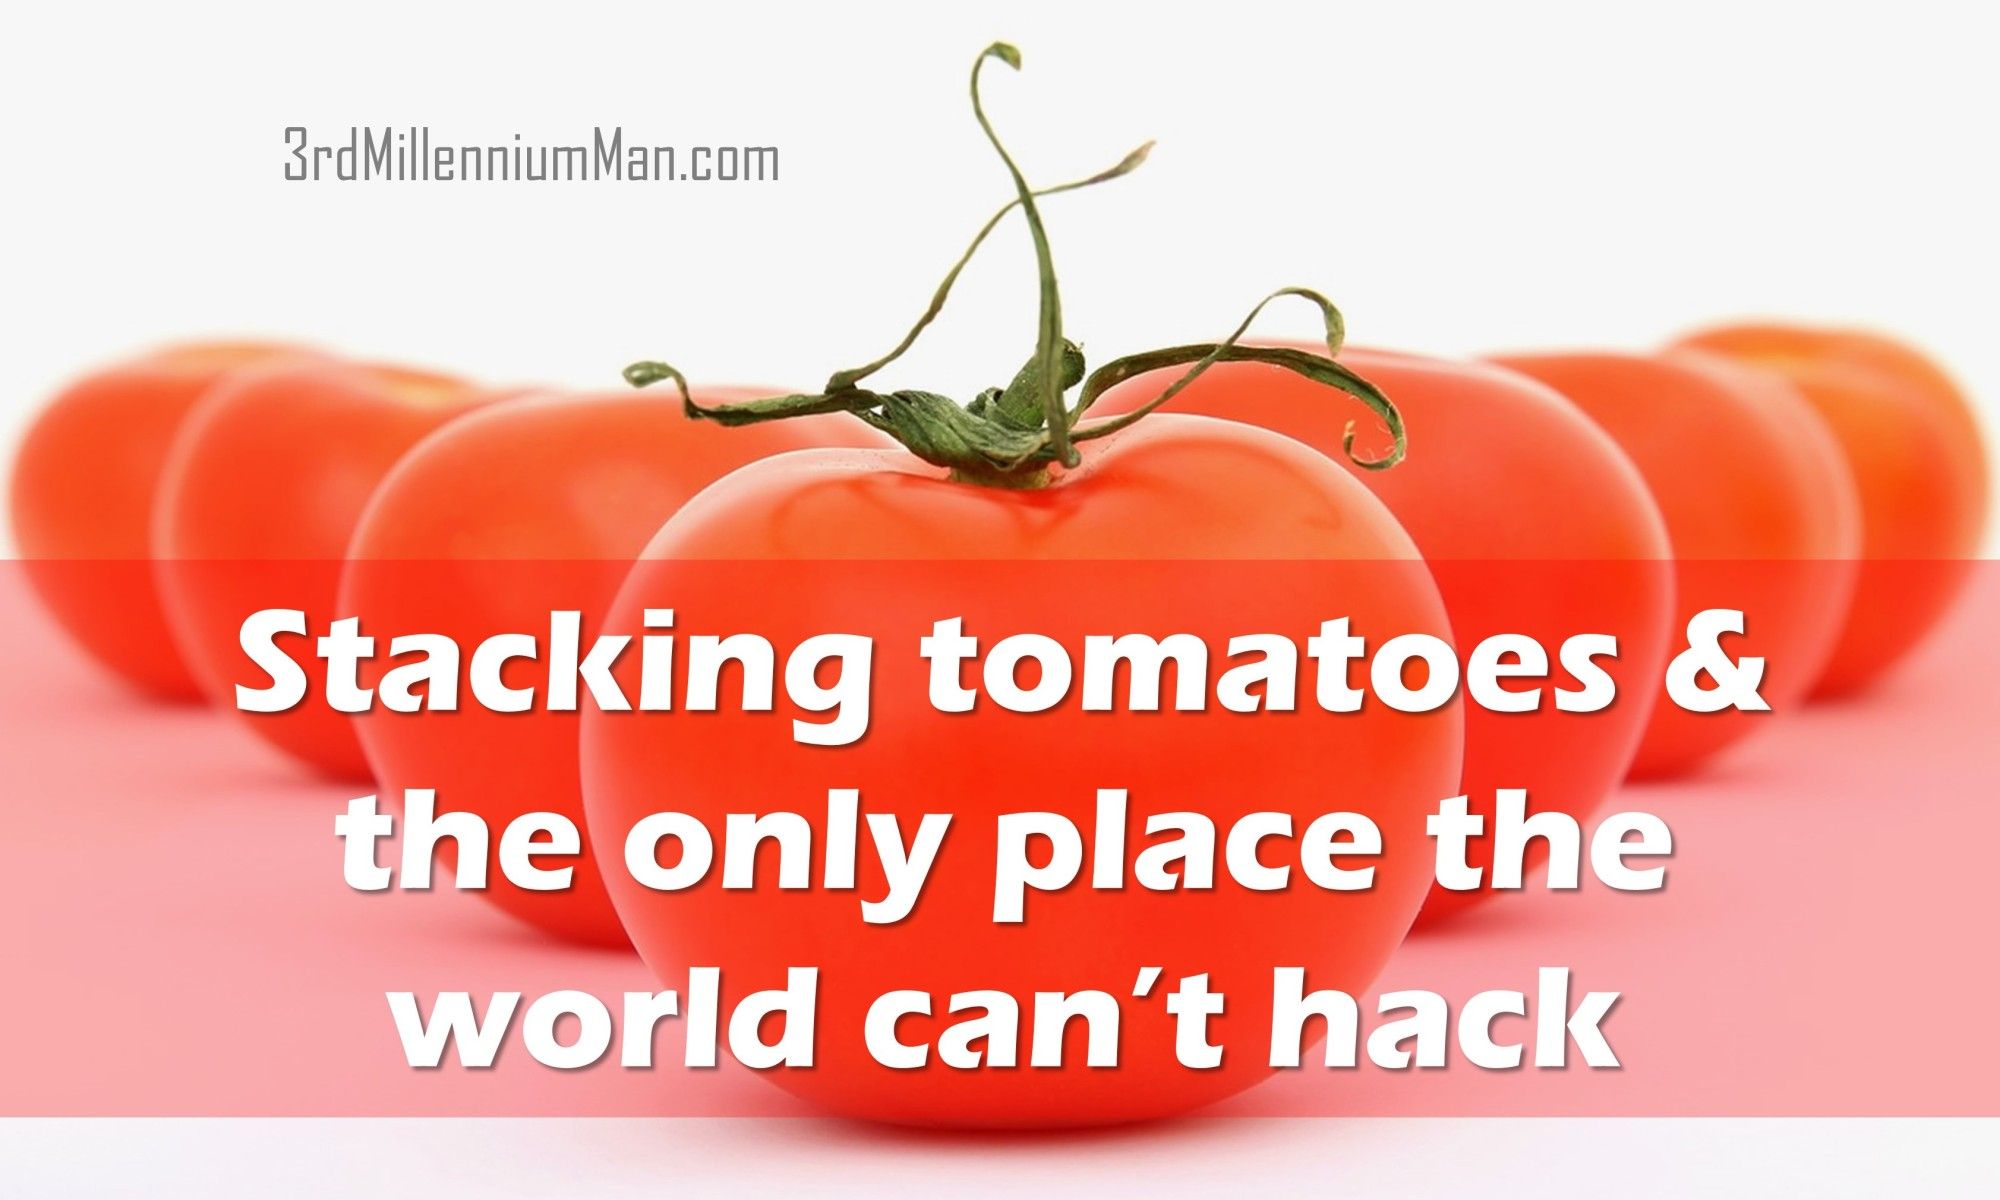 title text with image of fresh red tomatoes